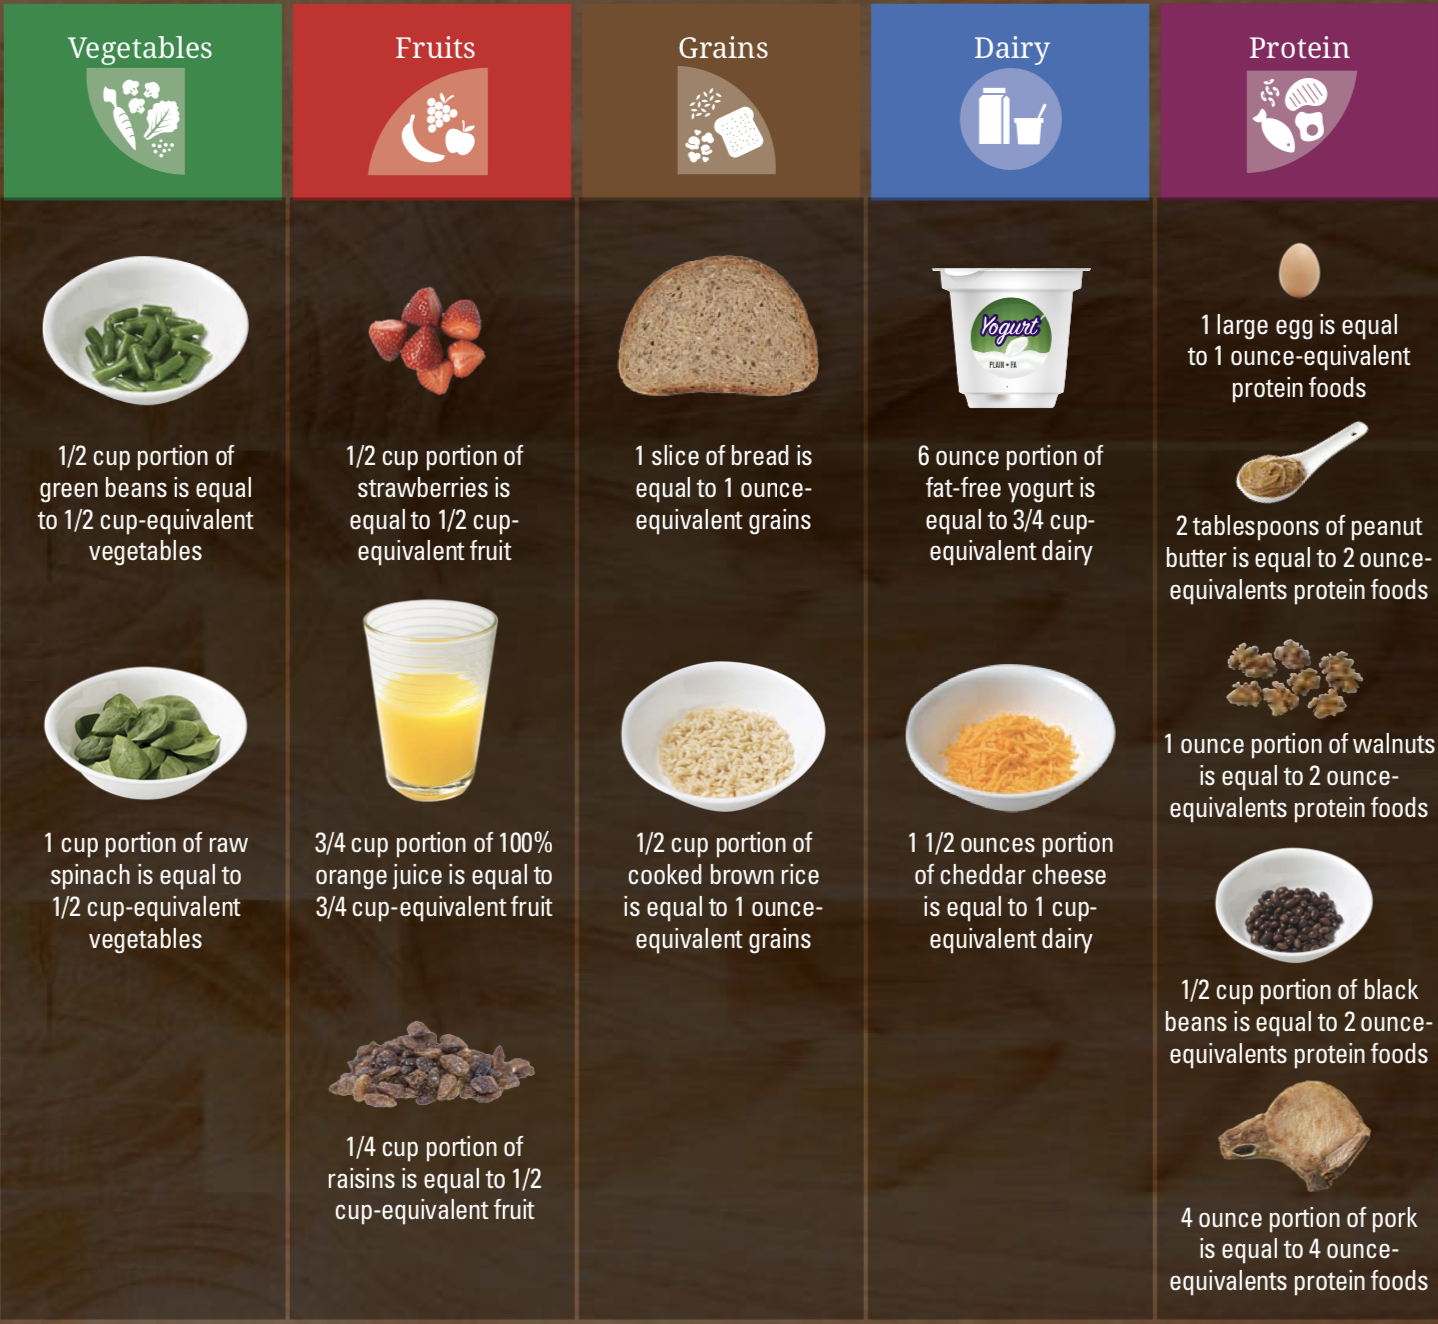 This table shows the 5 different food groups, and lists examples of cup- and ounce-equivalents for each group. For vegetables 1/2 cup-equivalent is equal to 1/2 cup of green beans or 1 cup of raw spinach. For fruits 1/2 cup-equivalent is equal to 1/2 cup strawberries or 1/2 cup 100% juice. For grains a slice of bread or 1/2 cup of cooked rice is equal to 1 ounce-equivalent. For dairy 1.5 ounces of cheese or 1 cup of yogurt is equal to 1 cup dairy equivalent. For protein, 1 ounce-equivalent is equal to an egg, 1 Tbsp of peanut butter, 1/2 ounce of nuts, 1/4 cup black beans, and an ounce of meat.